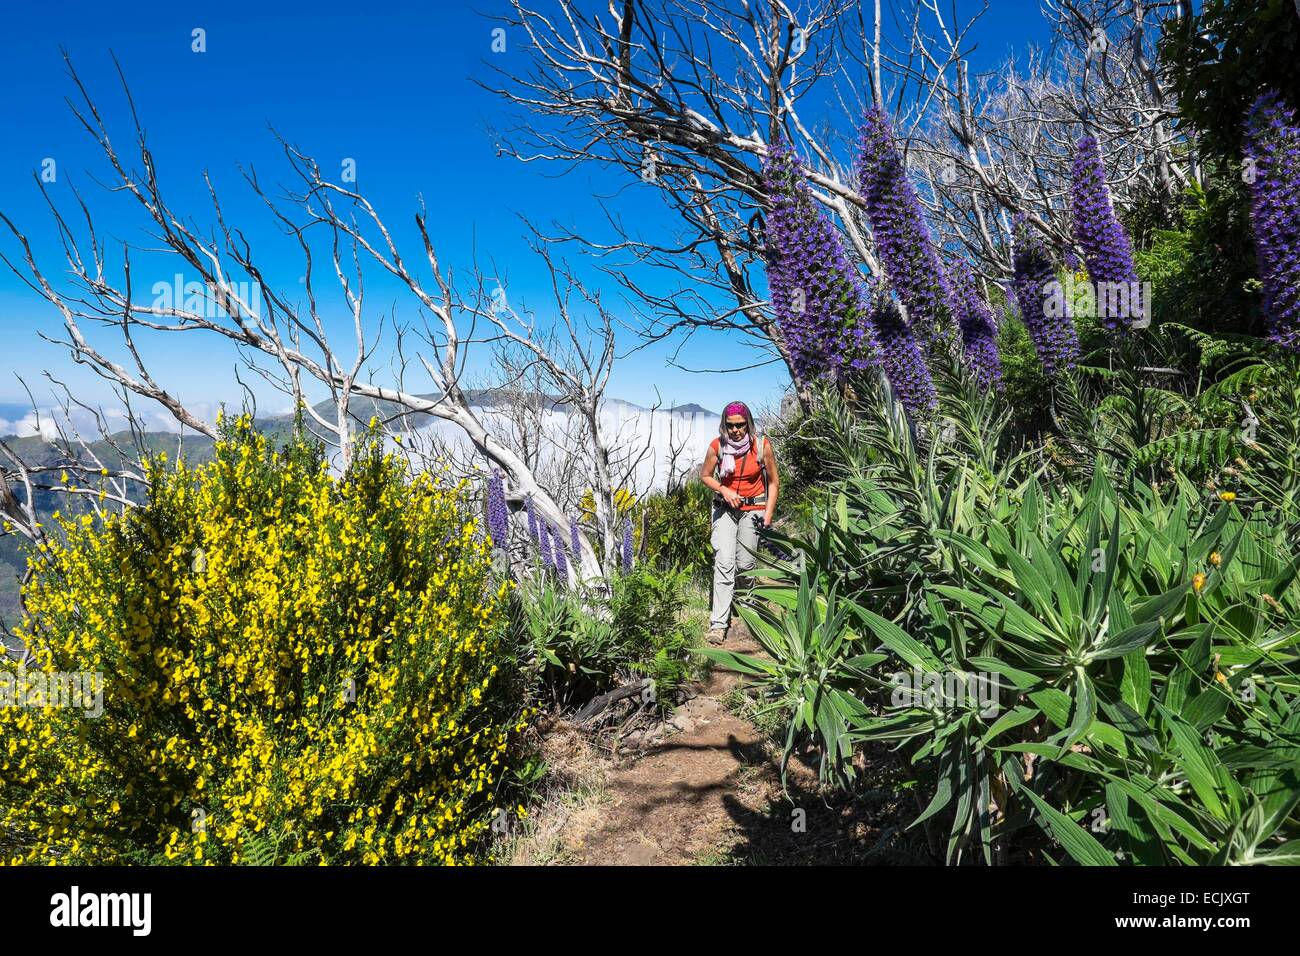 Portugal, Madeira island, hike from Encumeada to Curral das Freiras, vegetation regrowth after many fires - Stock Image